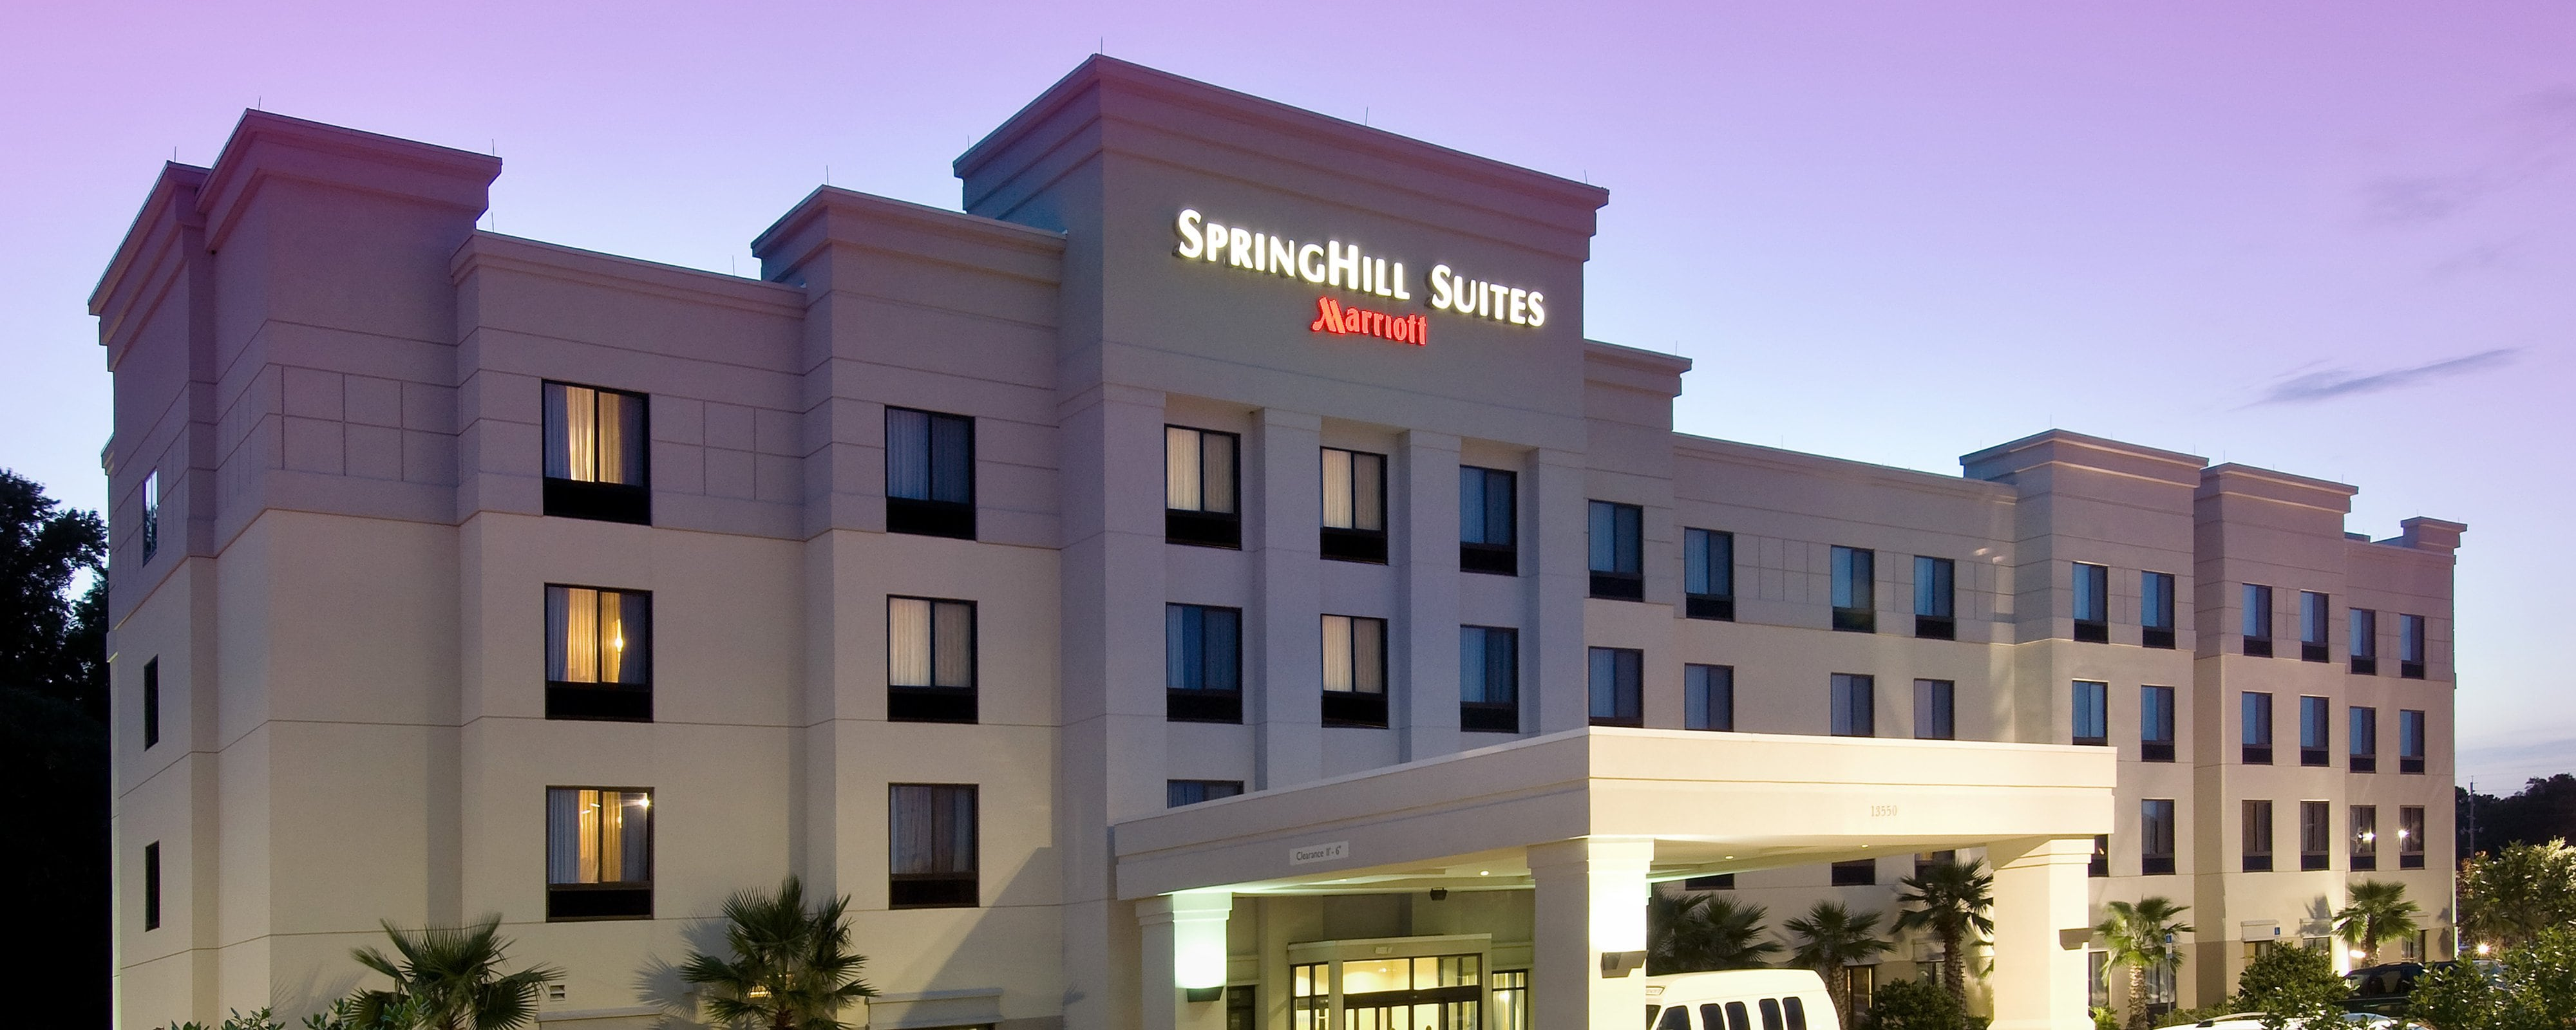 Springhill Suites Jacksonville Airport All Suites Hotel